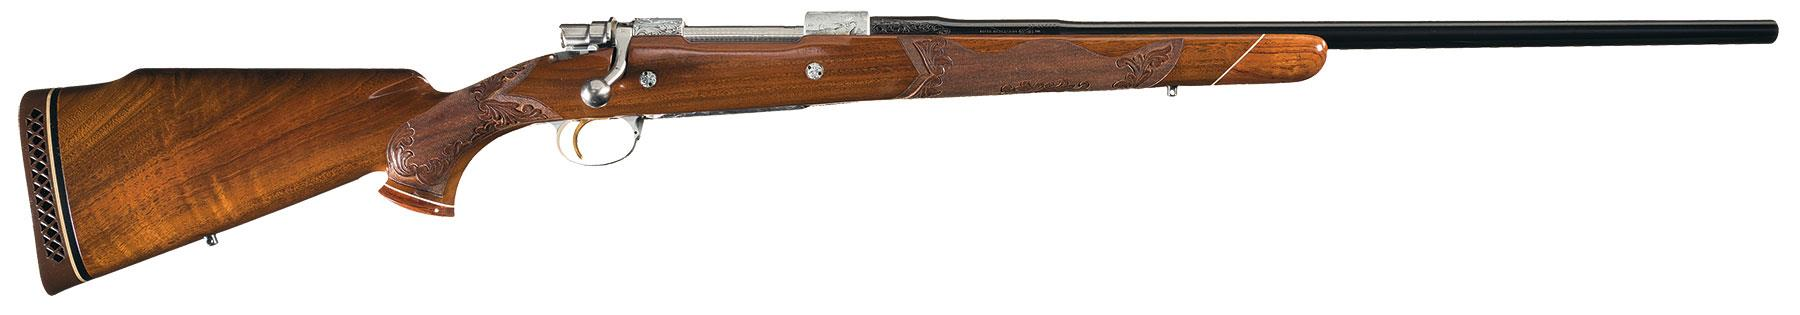 Browning Arms Olympian Grade 338 Winchester Magnum